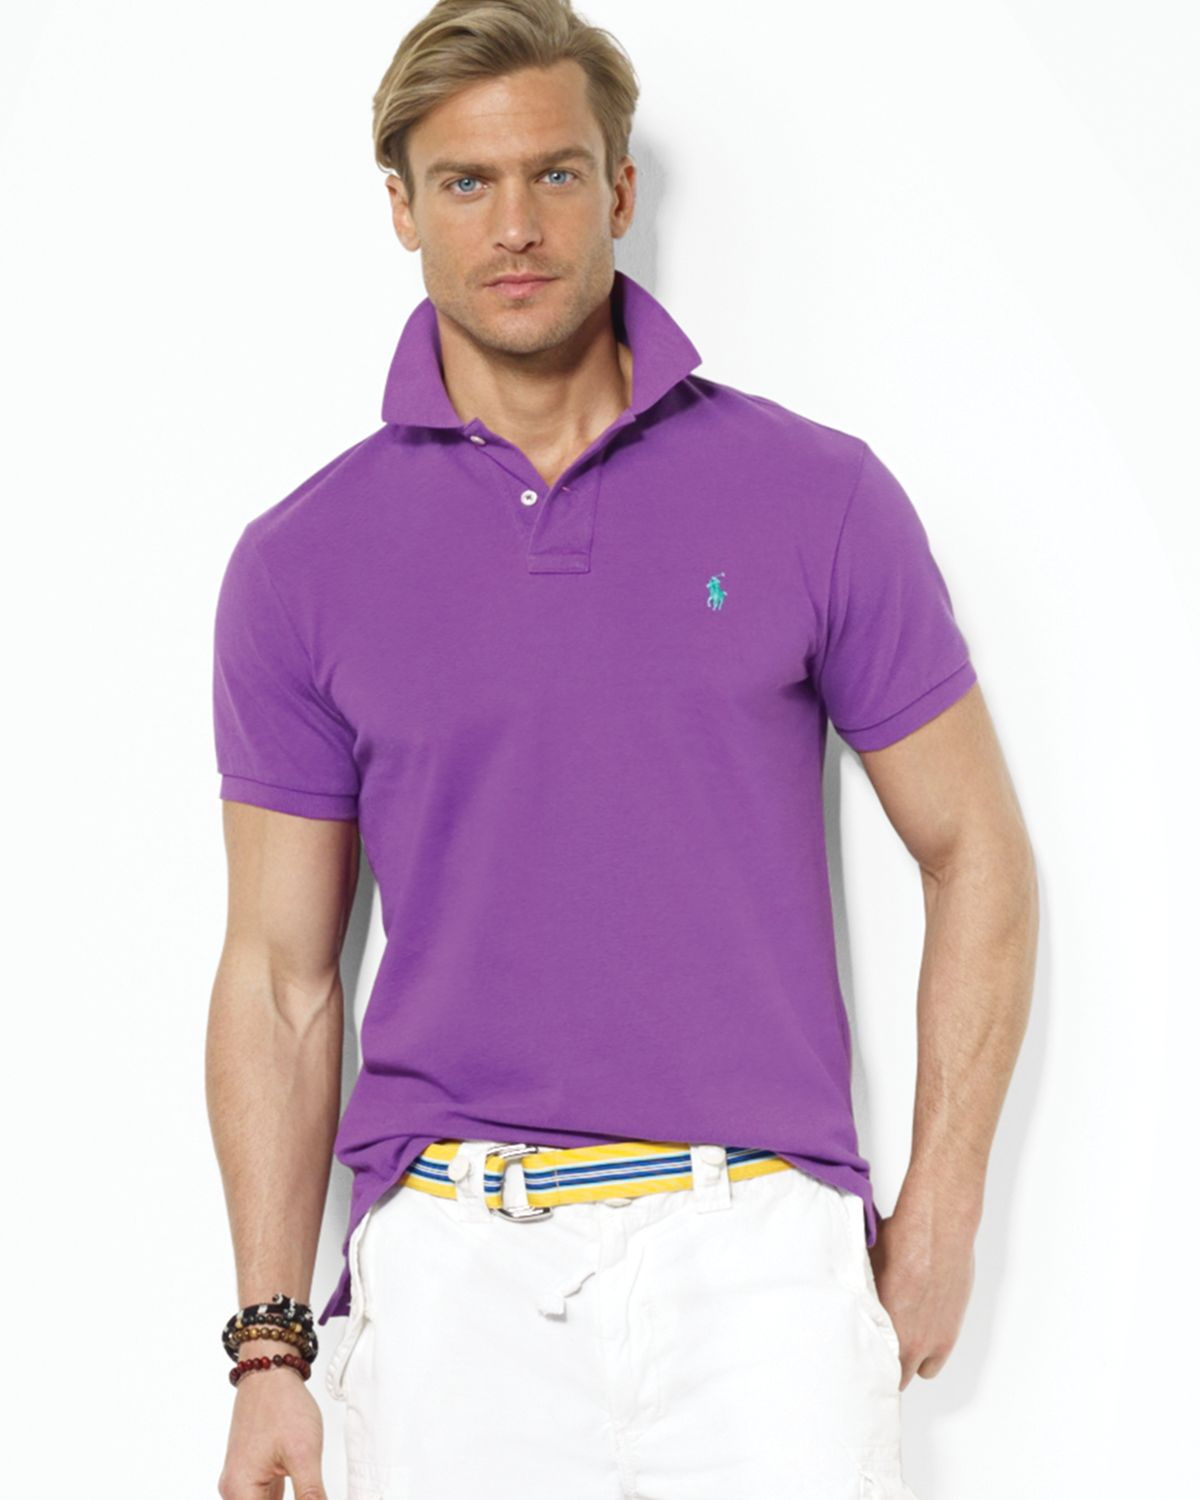 Ralph Lauren Polo Customfit Mesh Polo Shirt In Purple For